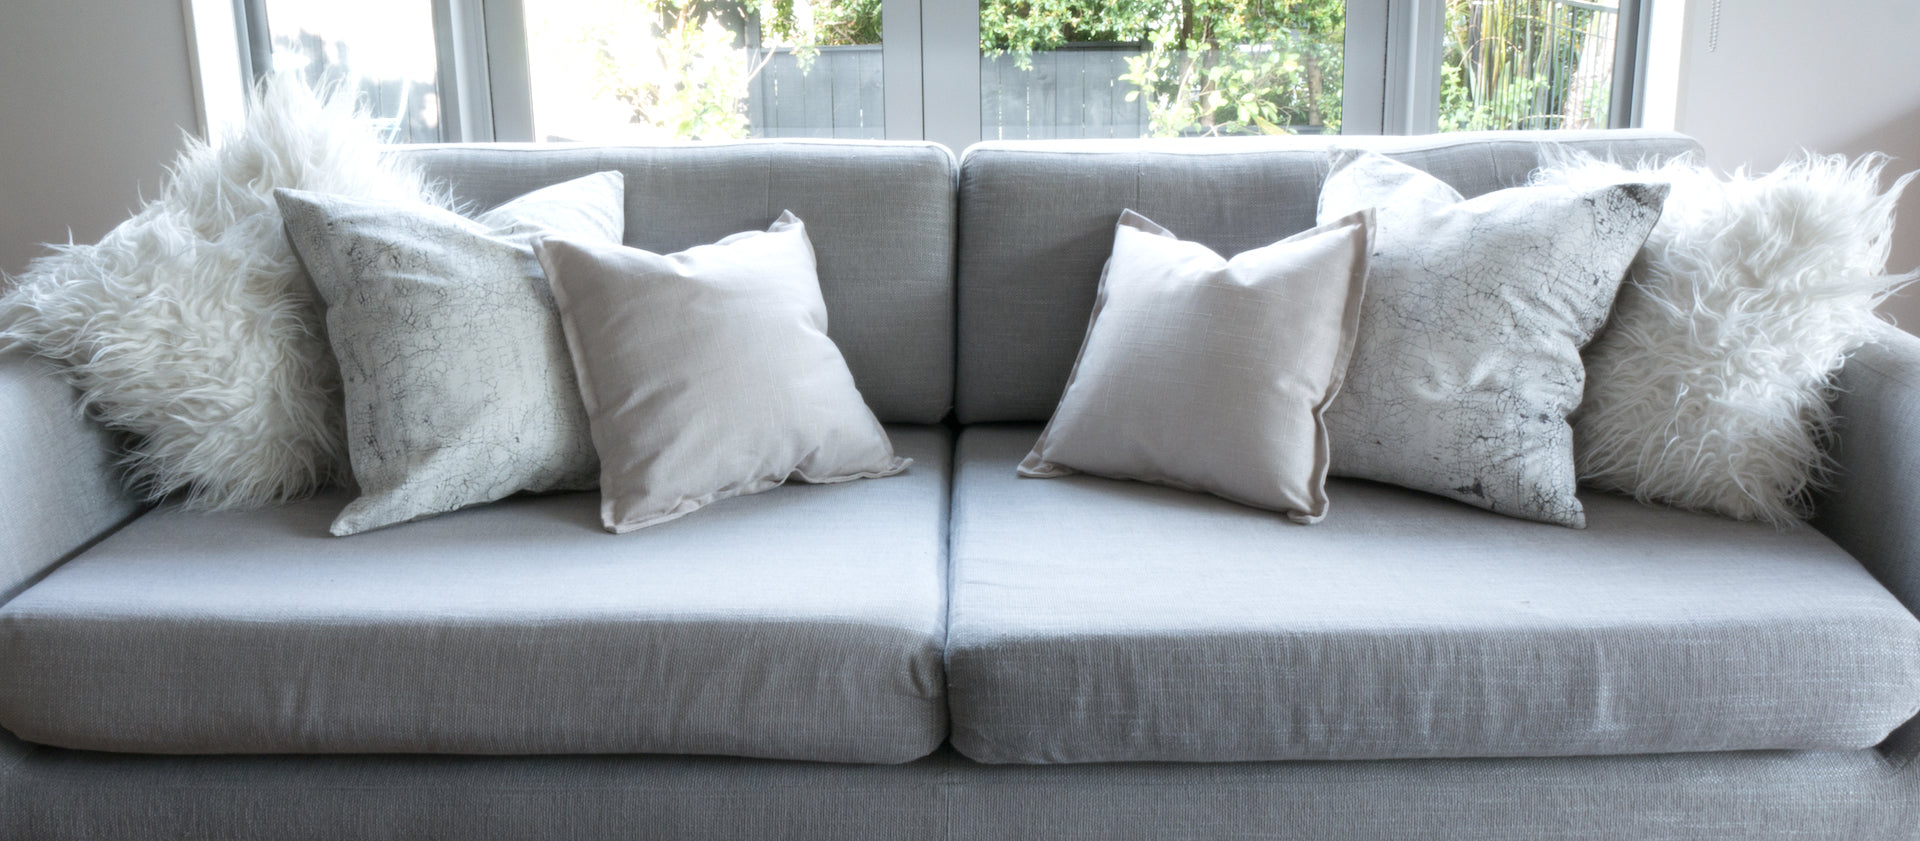 formal styling cushions